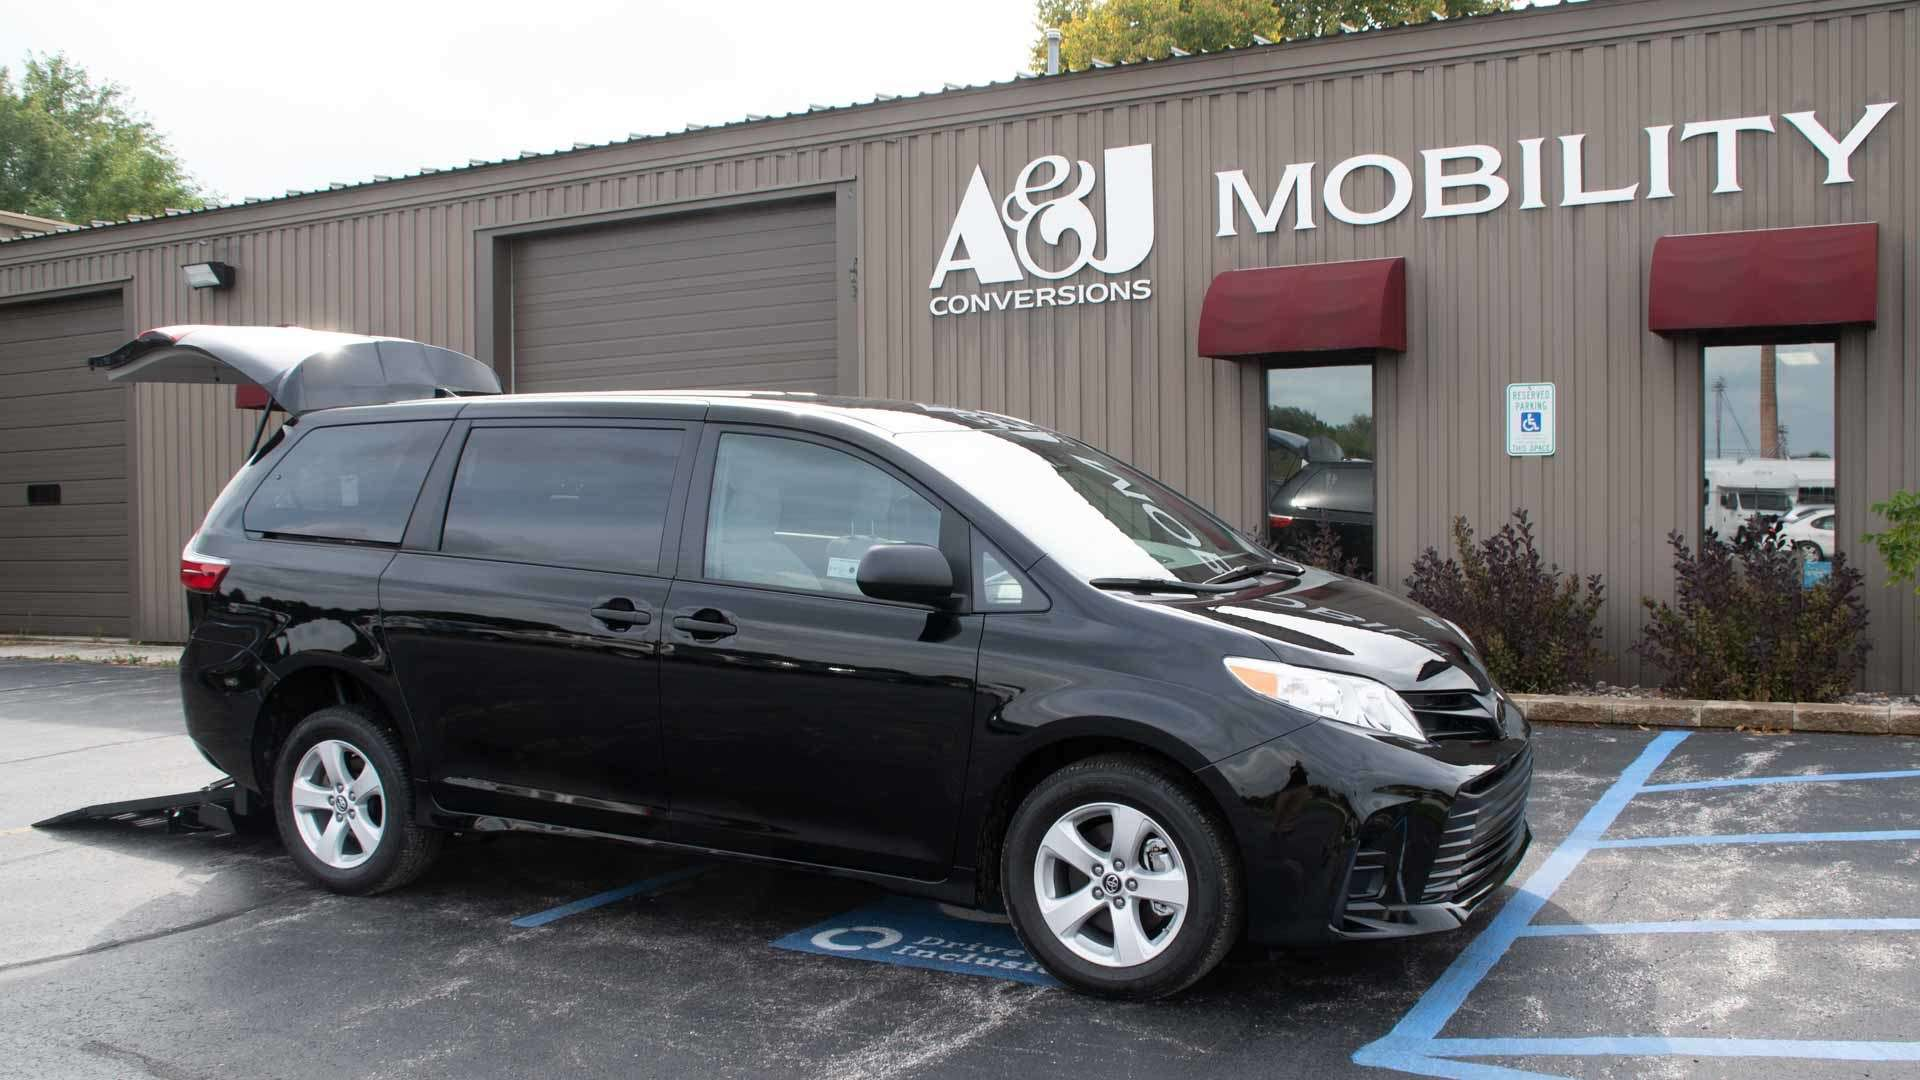 2019 Toyota Sienna | Conversion: Freedom Motors Manual Toyota Rear Entry